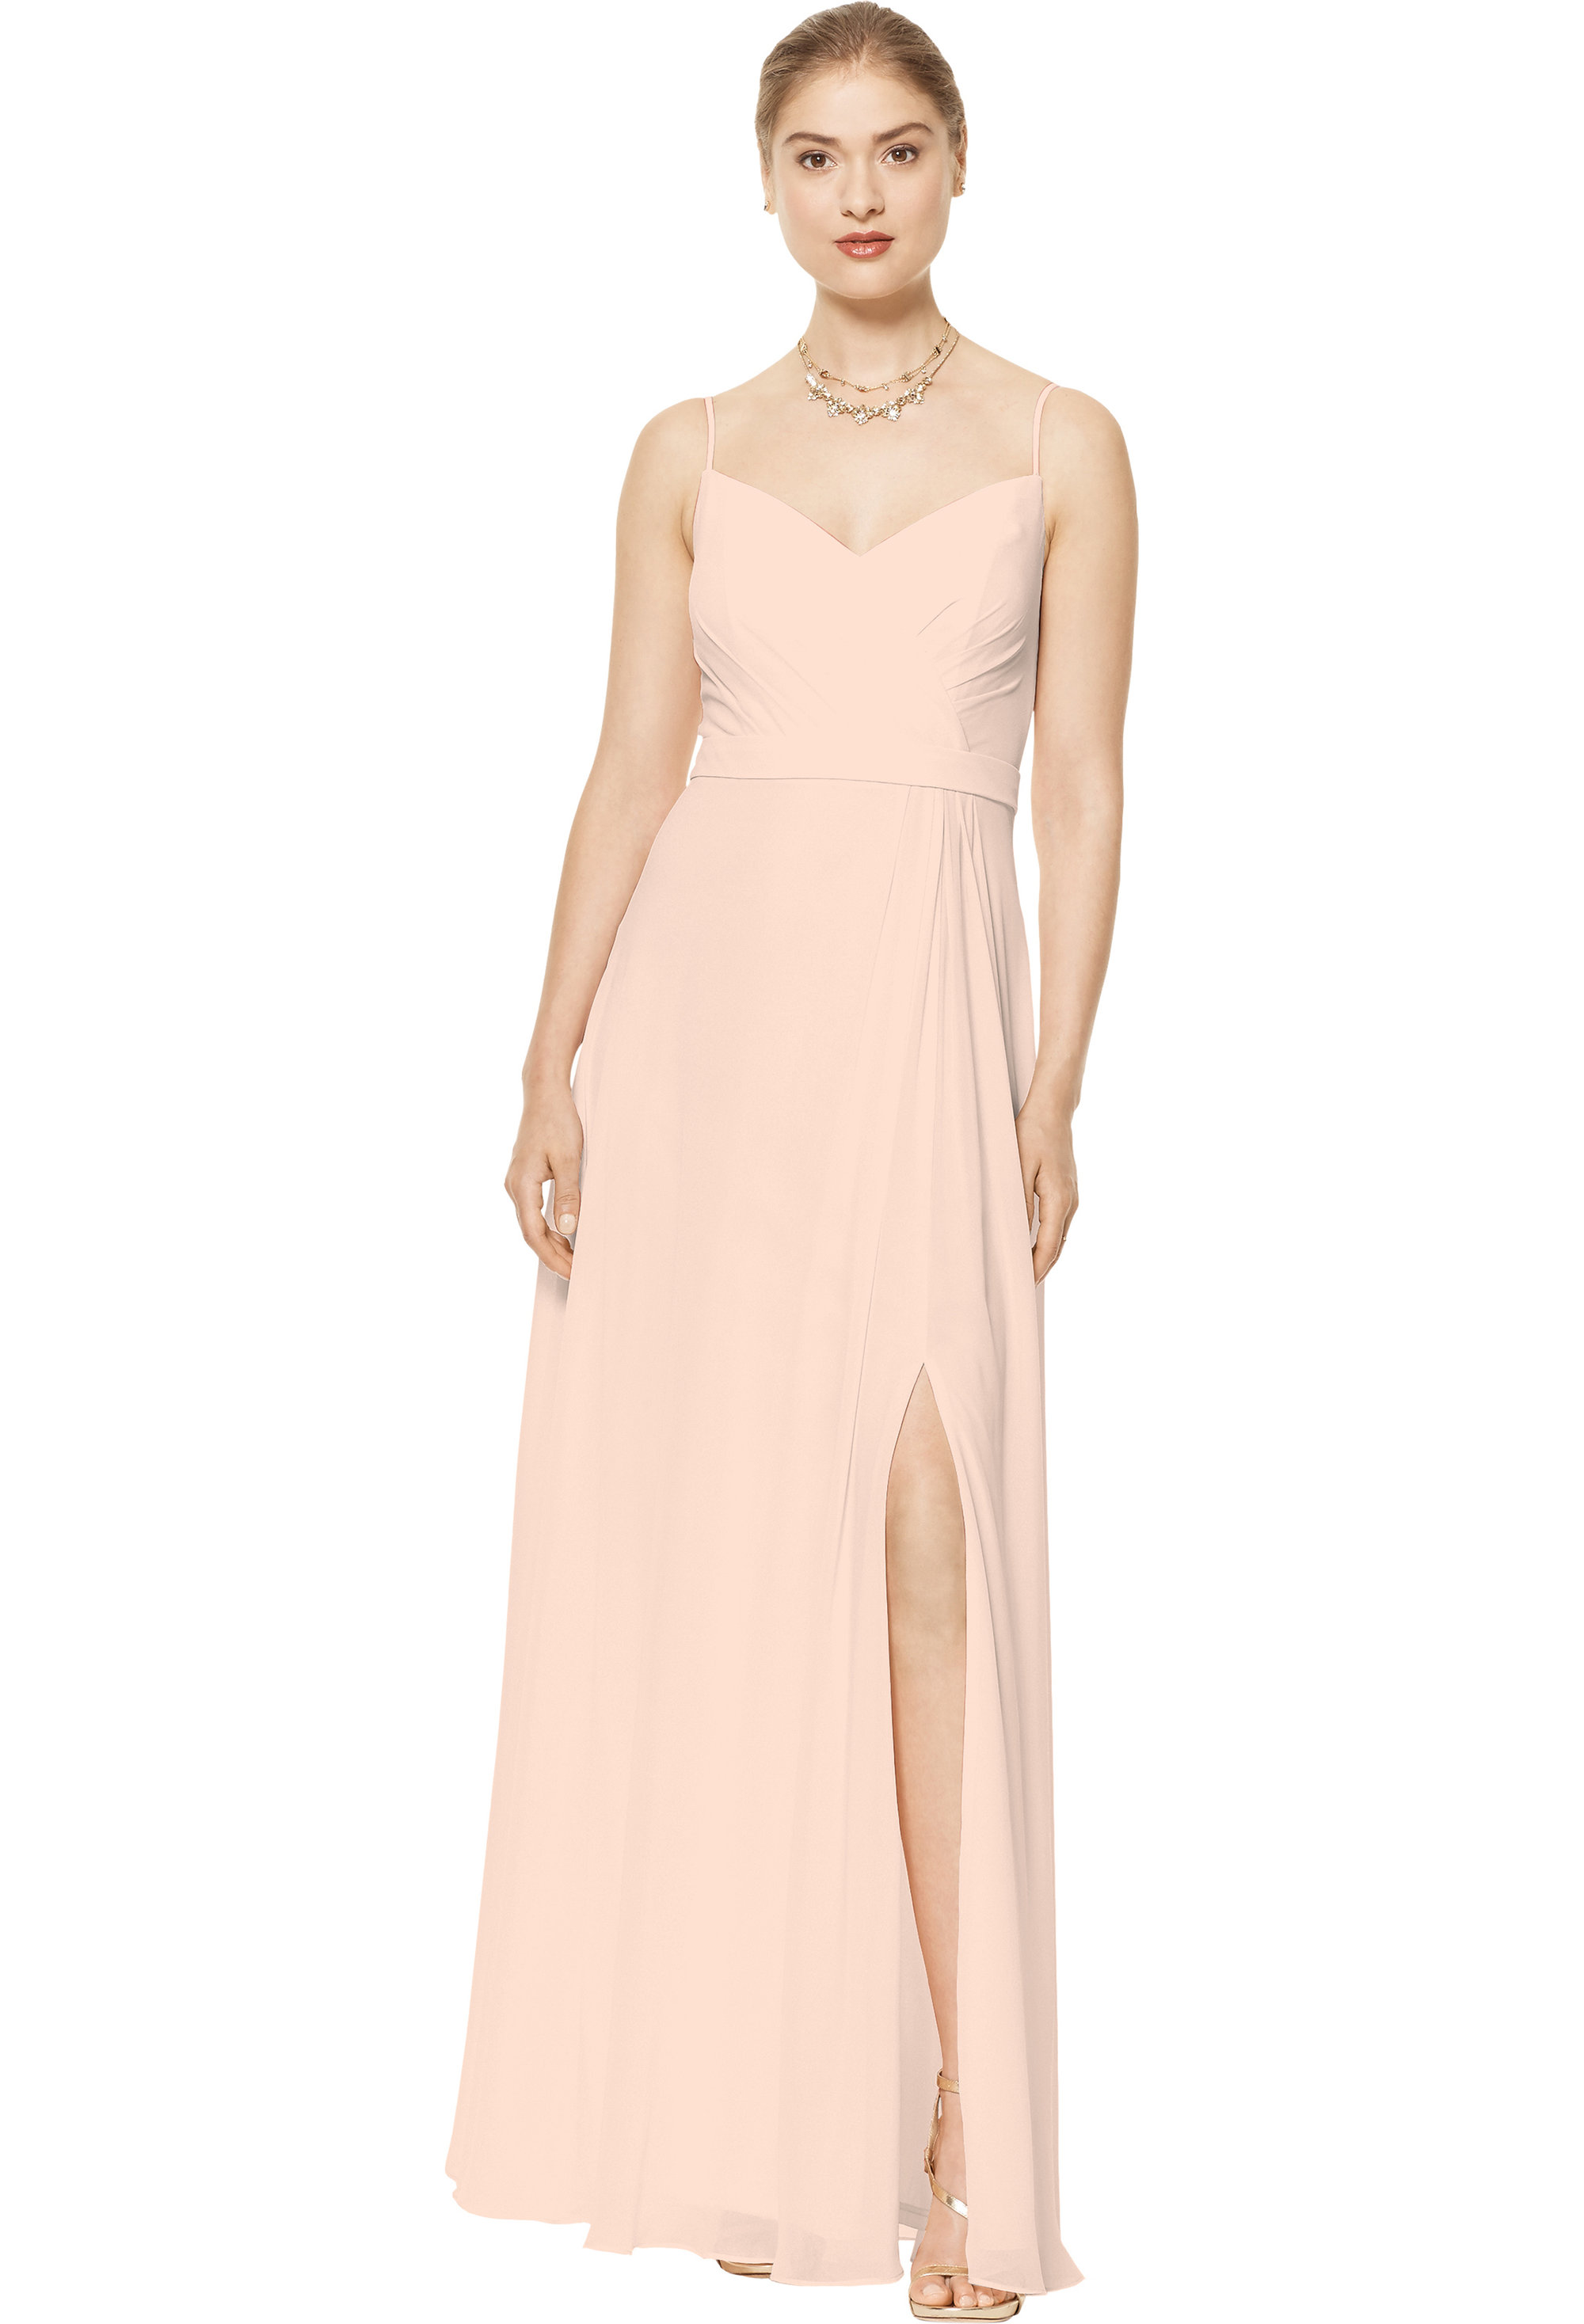 Bill Levkoff SHELL PINK Chiffon V-neck A-line gown, $170.00 Front